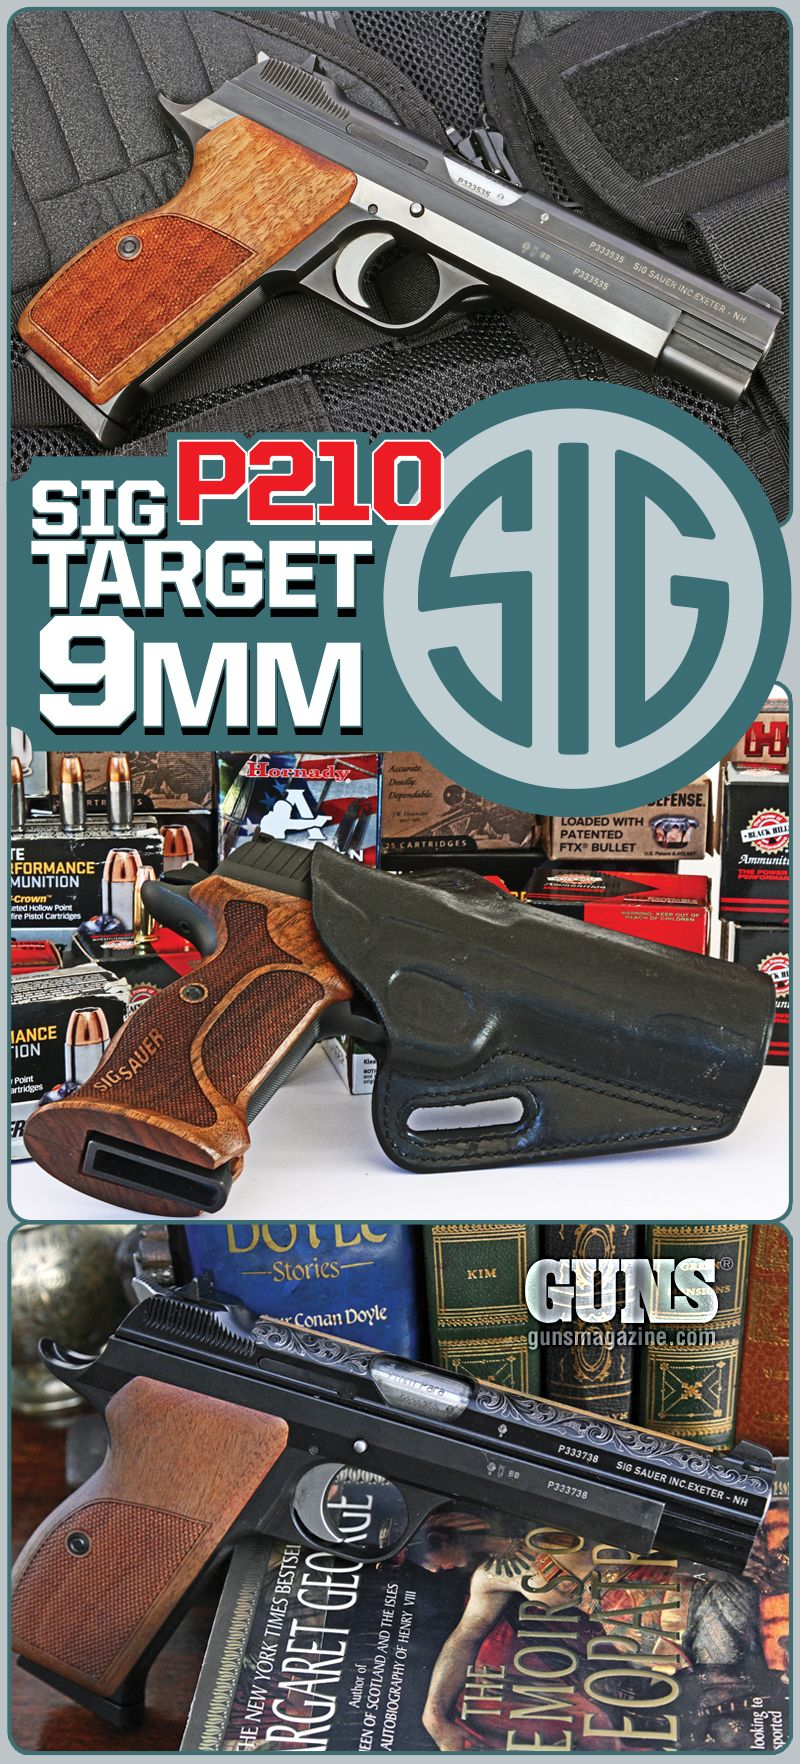 SIG P210 Target 9mm | By Mike Cumpston | Made In America